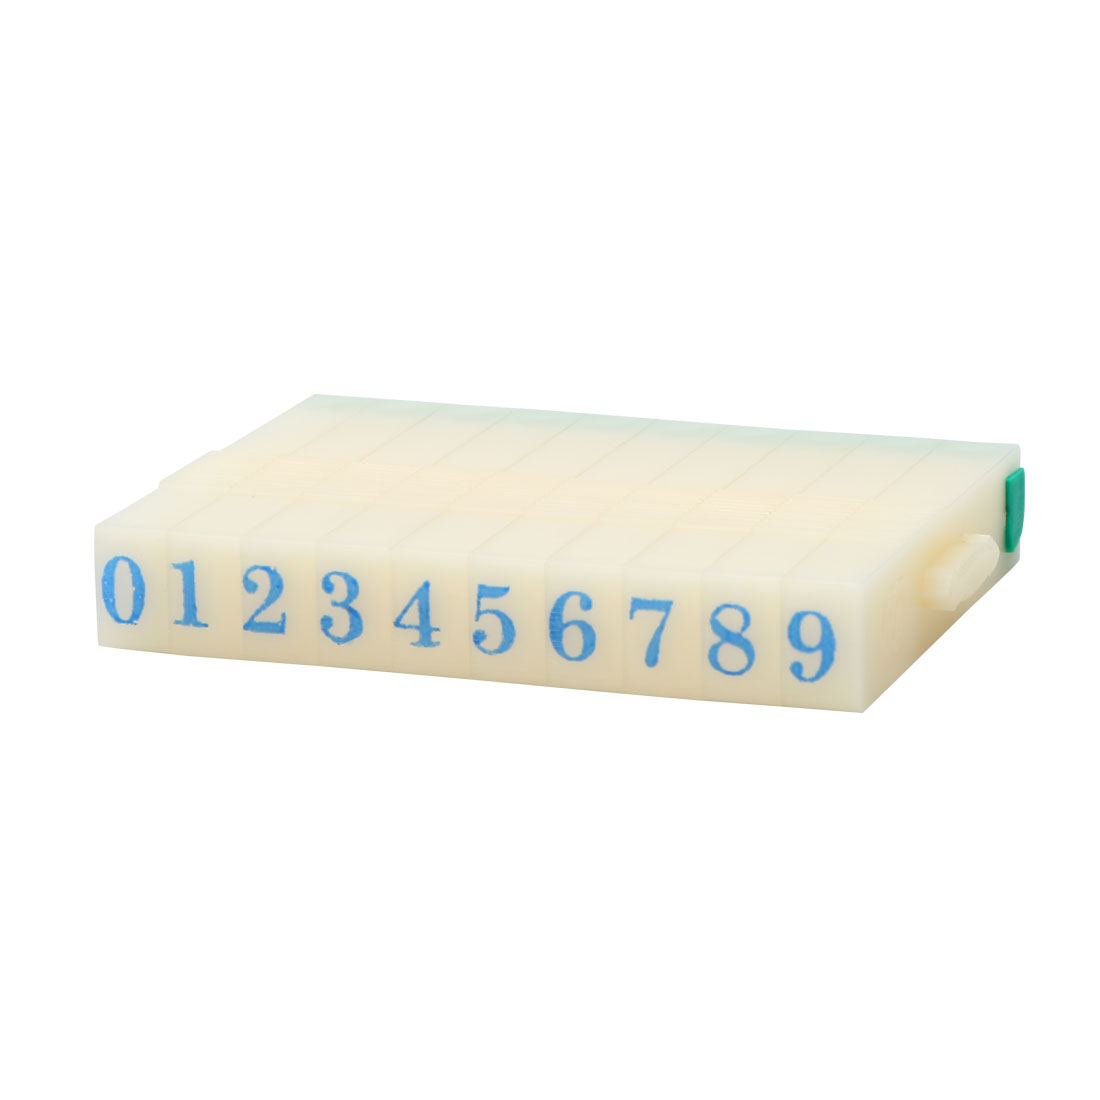 8mm Width Off White Green Plastic Rubber 0-9 Digits Detachable Arabic Numerals Stamp